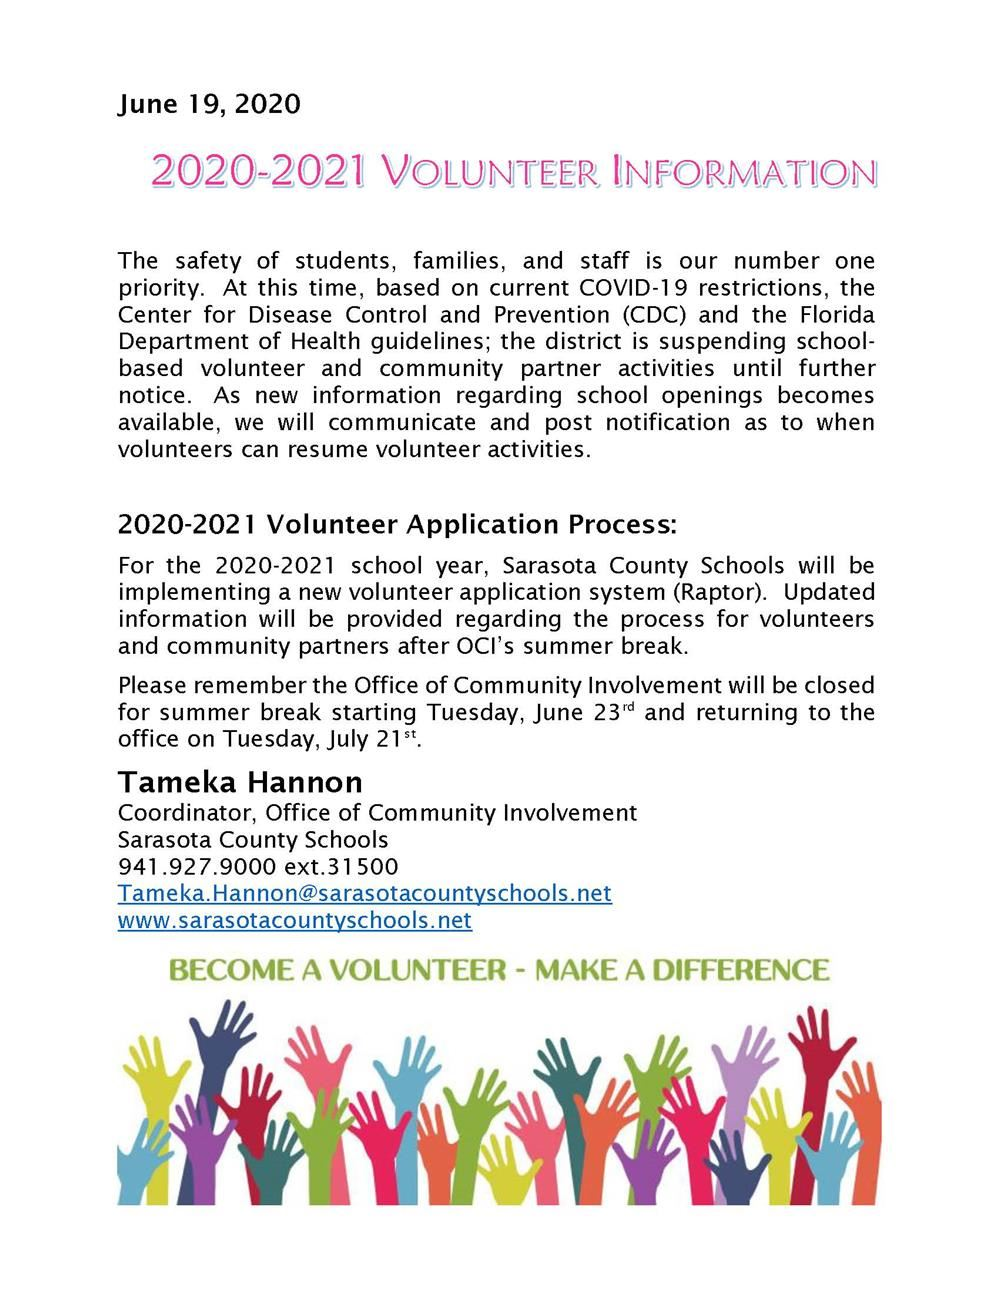 2020-2021 Volunteer Information